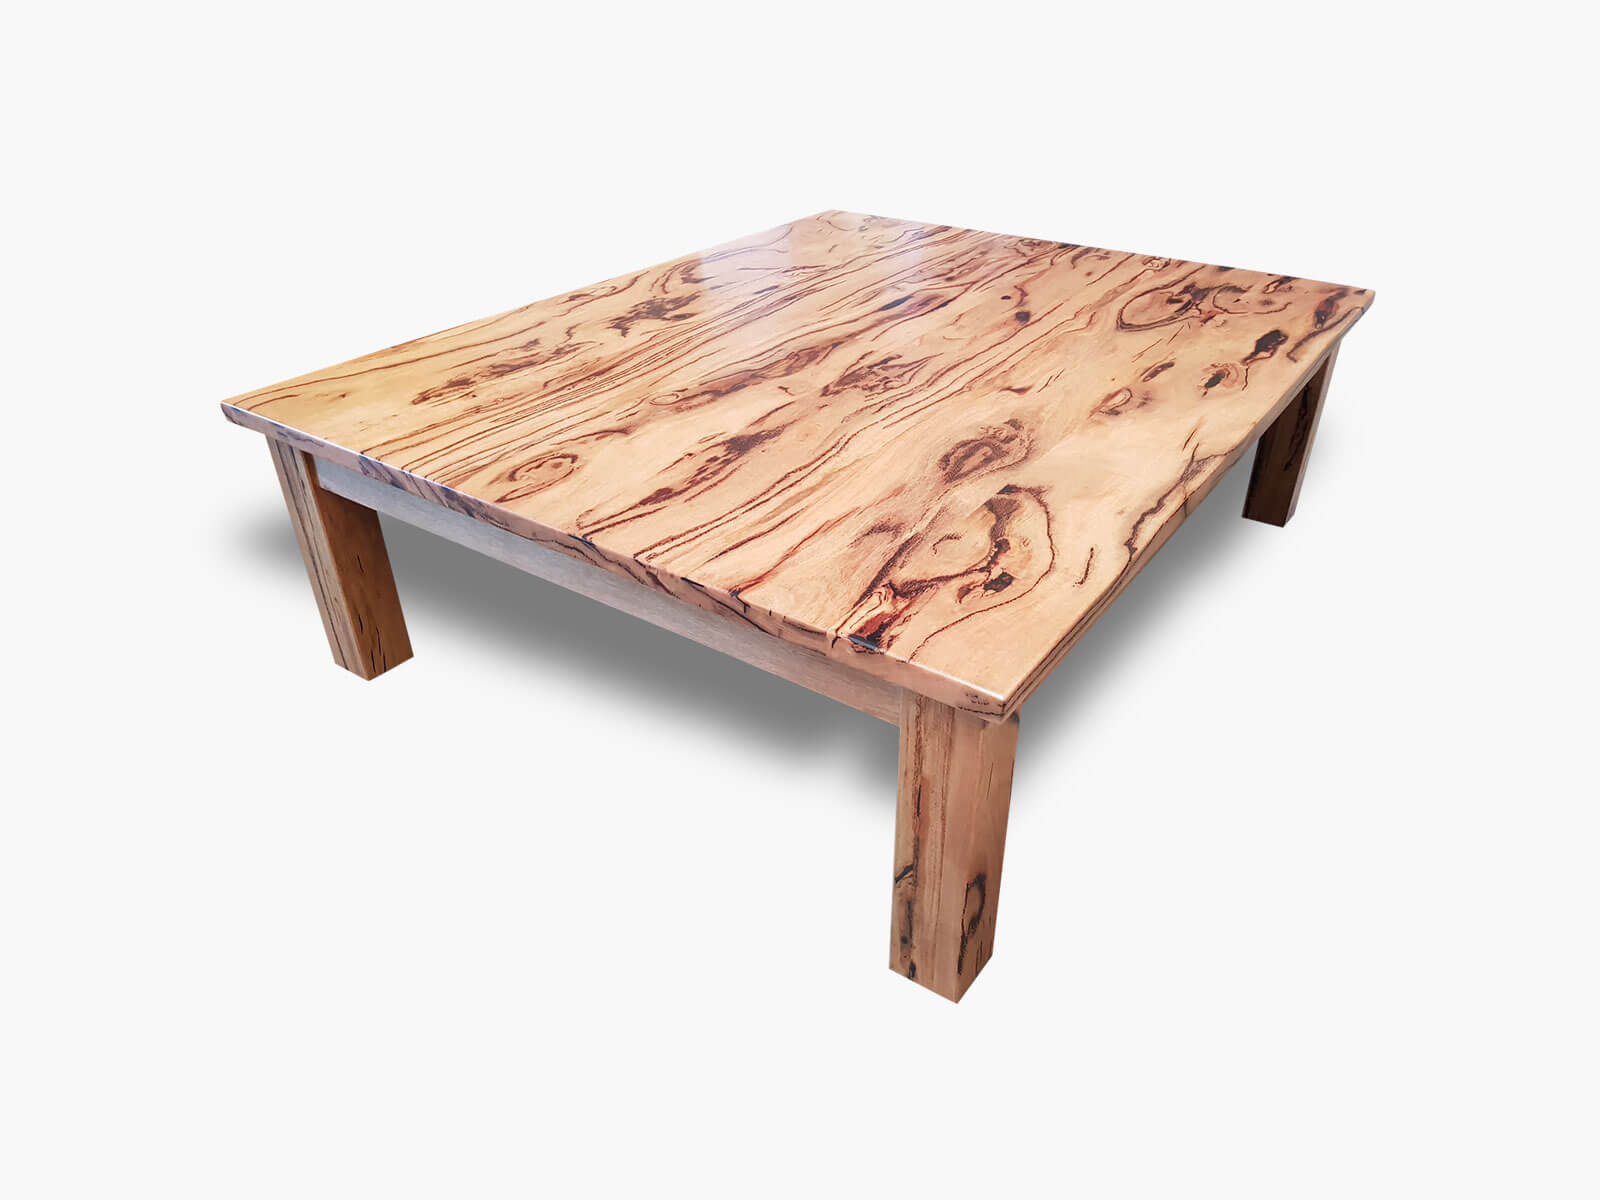 Weyba-Downs-Coffee Timber Furniture